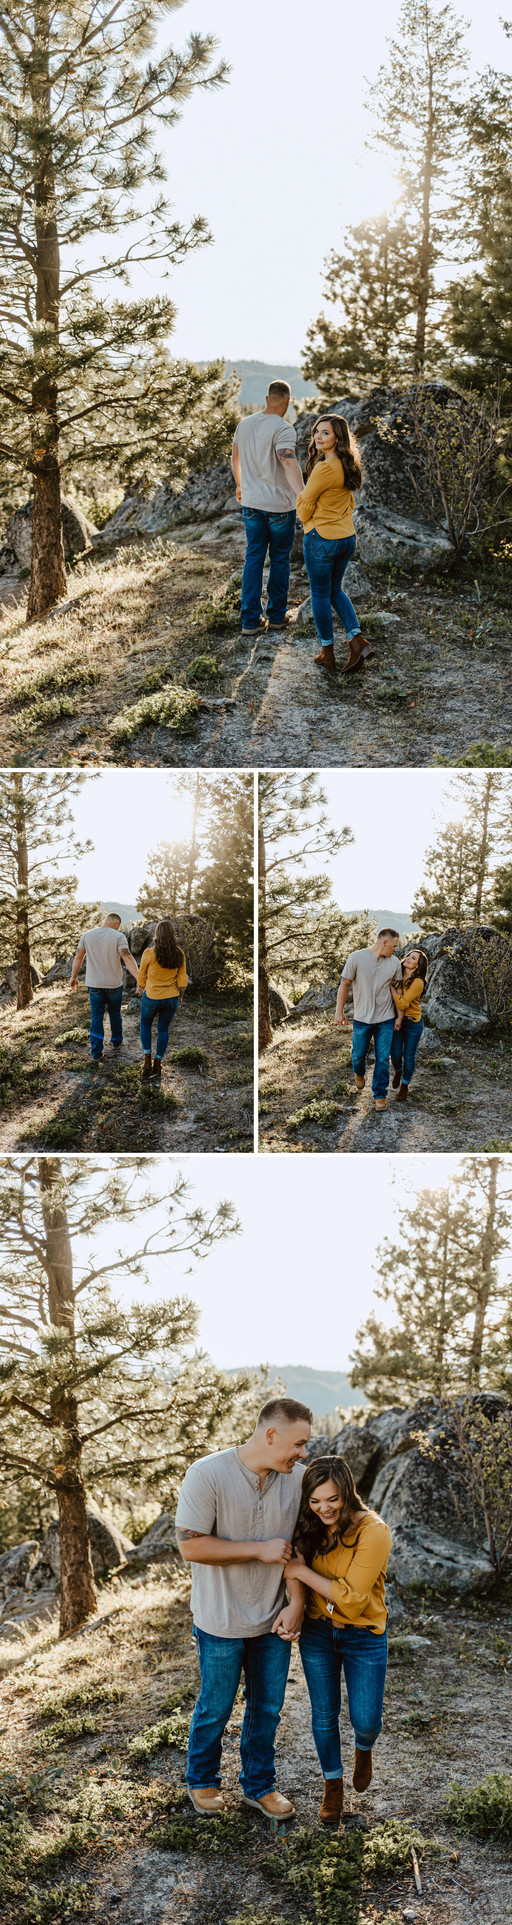 Image collage of Riley Thomas and Rylee Driscoll walking and holding hands. Image taken on Bogus Basin, in Boise, Idaho.